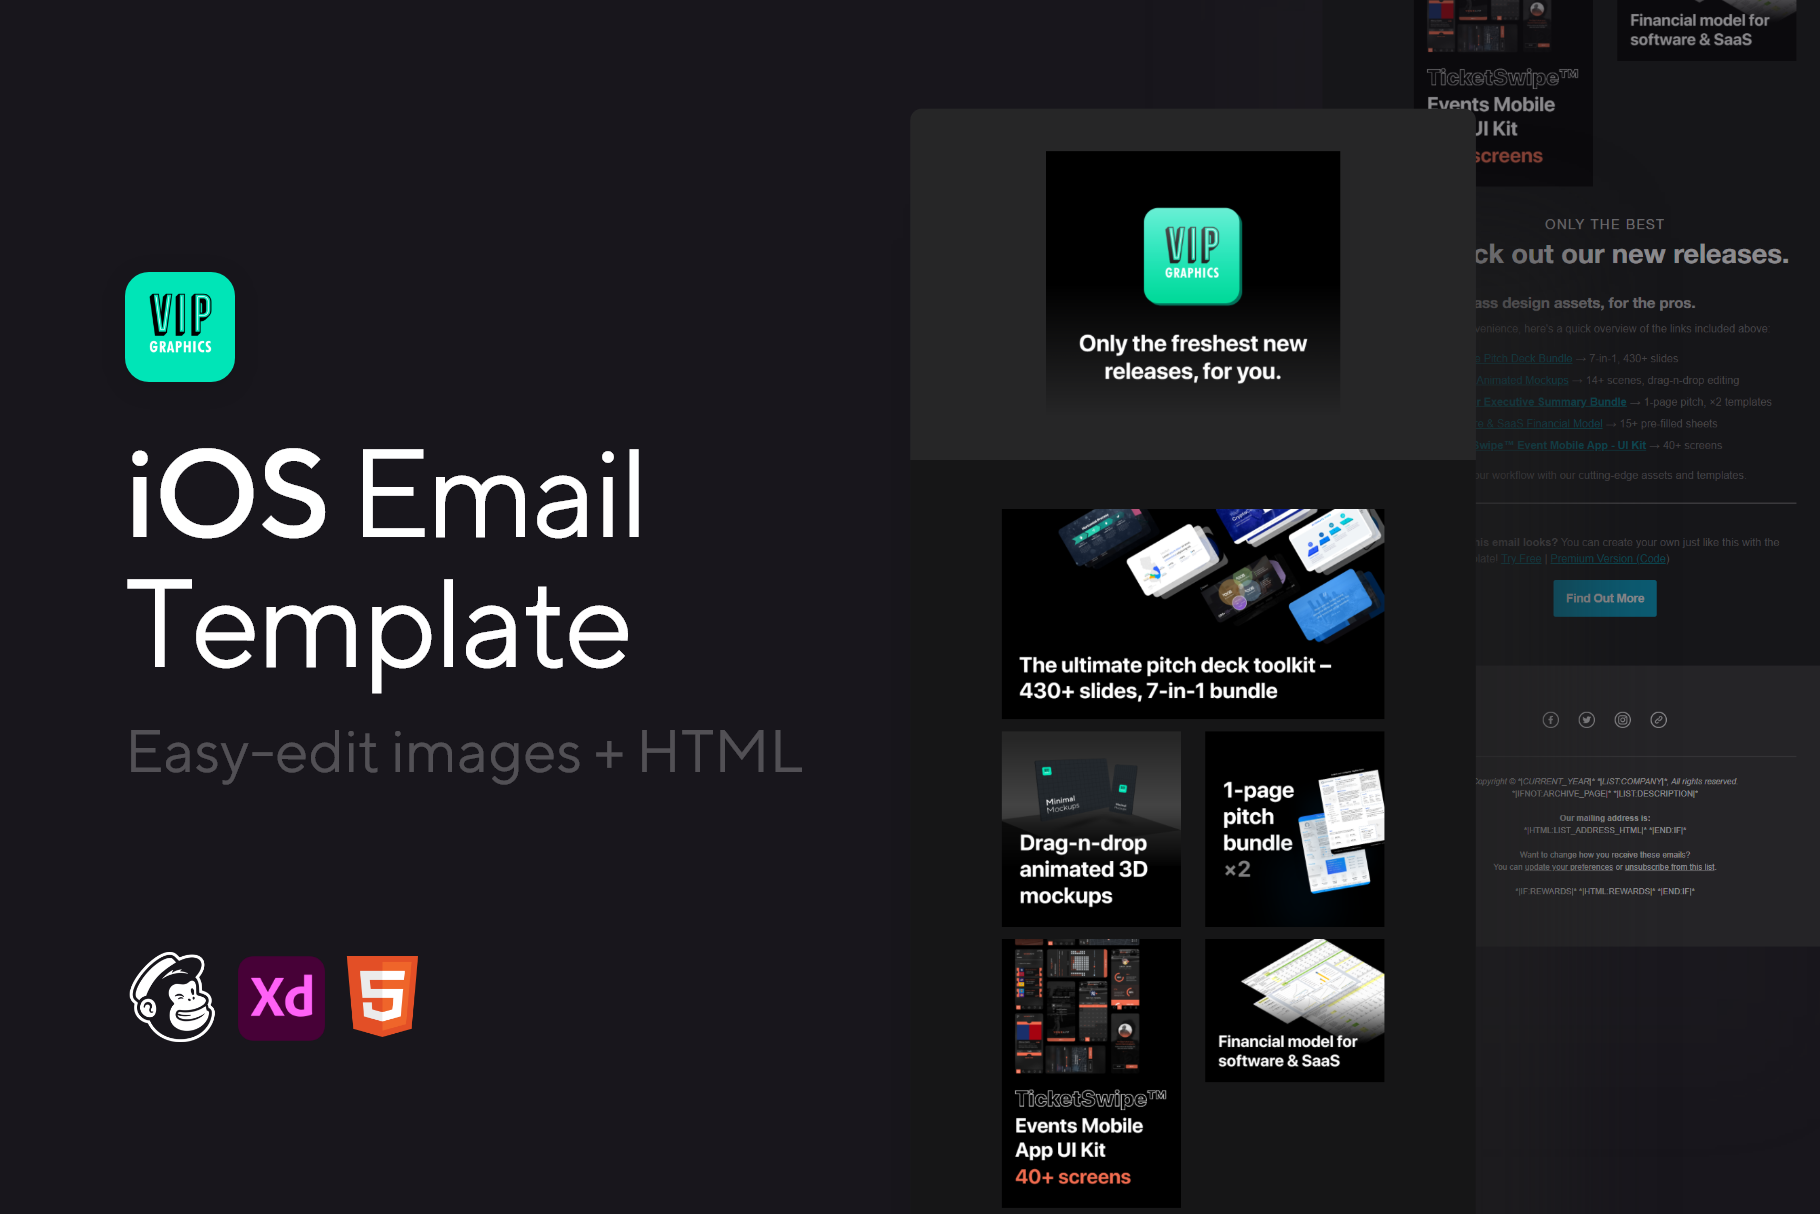 iOS 14 Newsletter Email Template - Editable HTML + Images